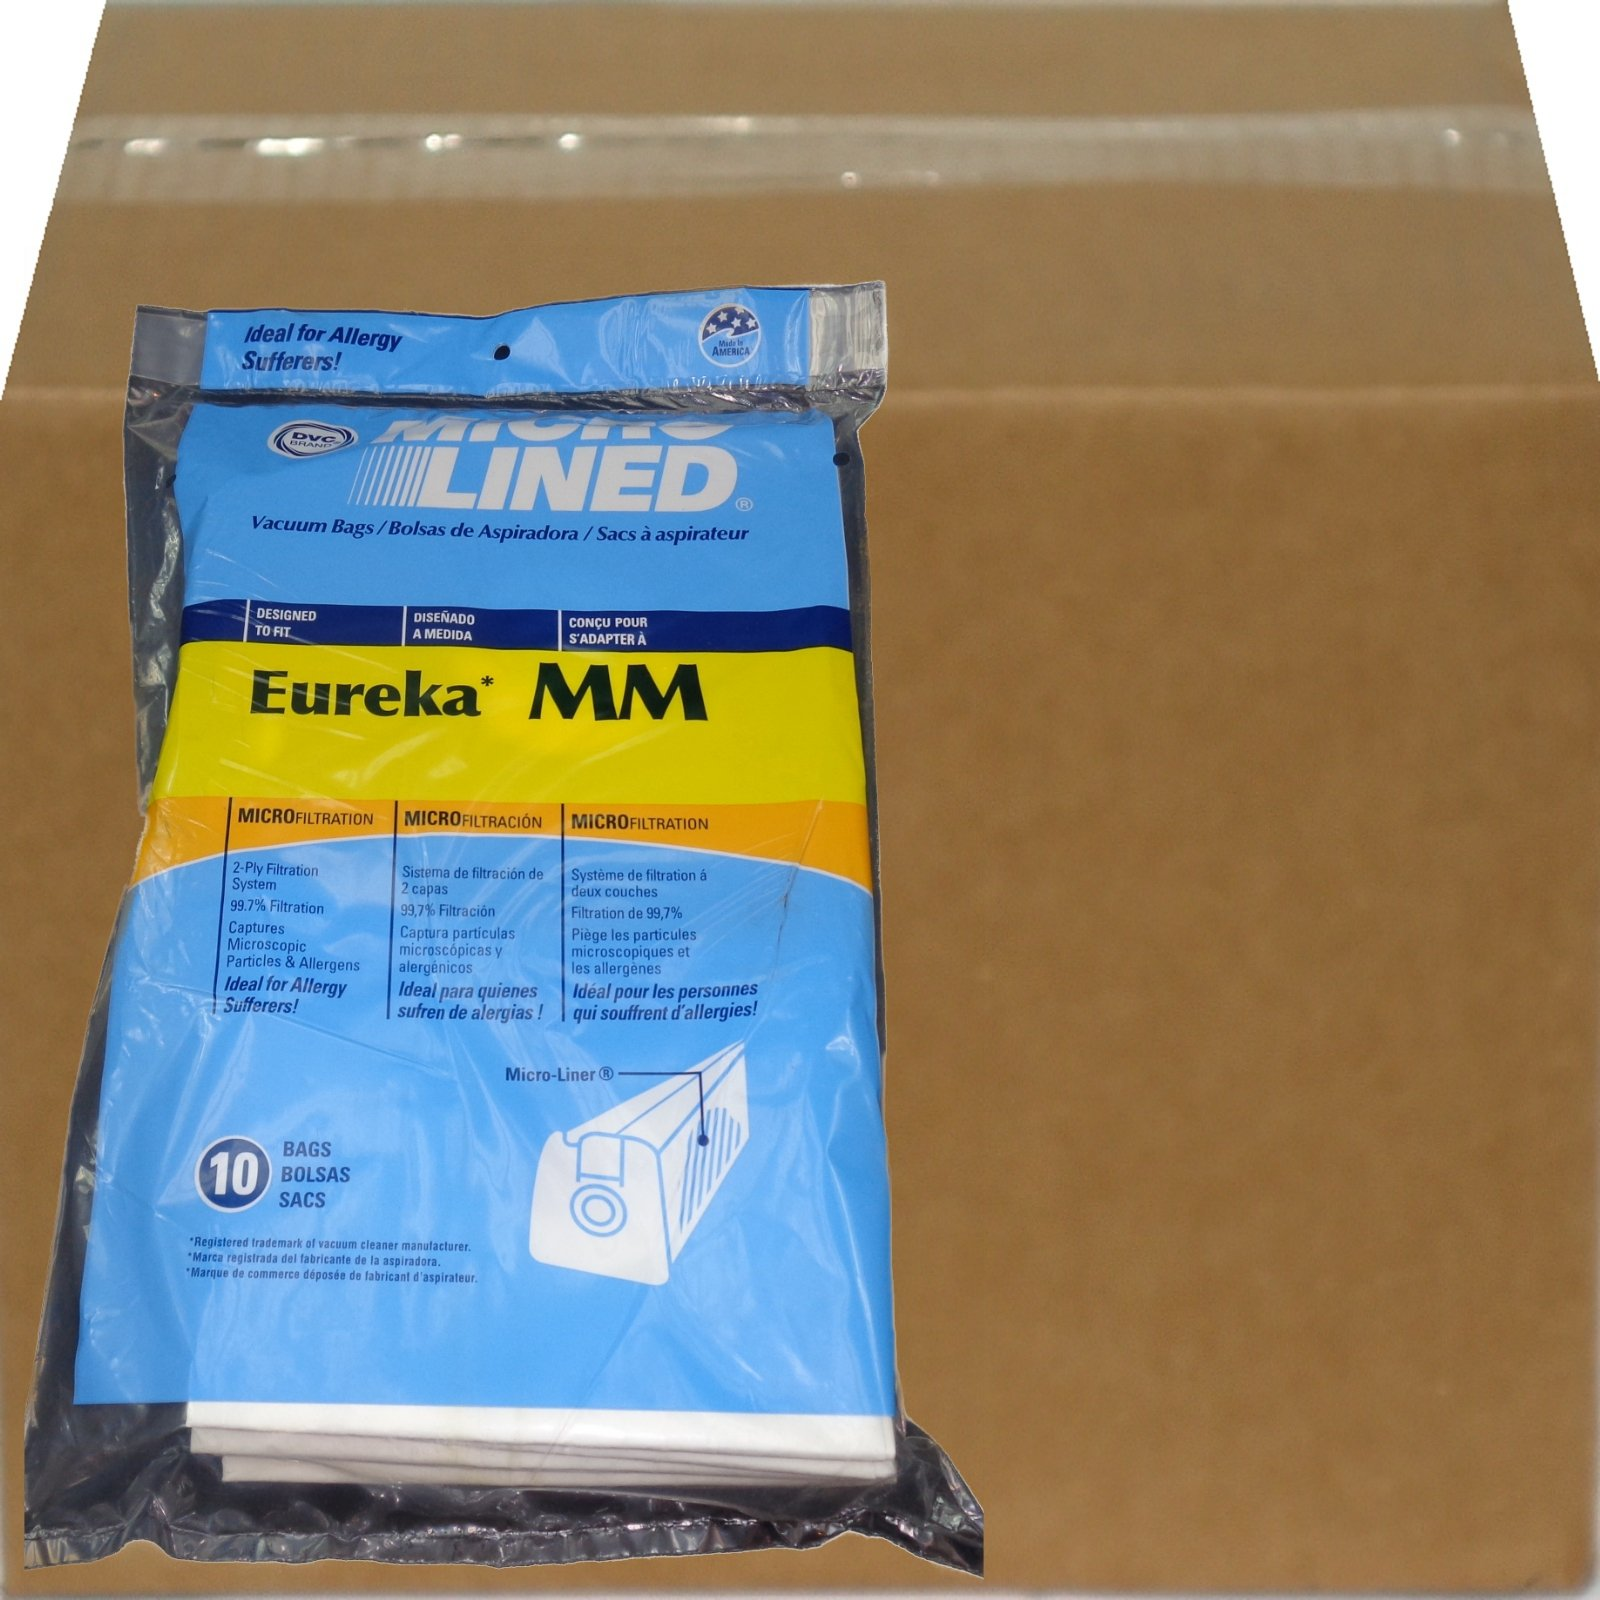 Eureka MM Micro-lined Mighty Mite & Sanitaire Allergen Filtration Vacuum Cleaner Bags (100) by DVC